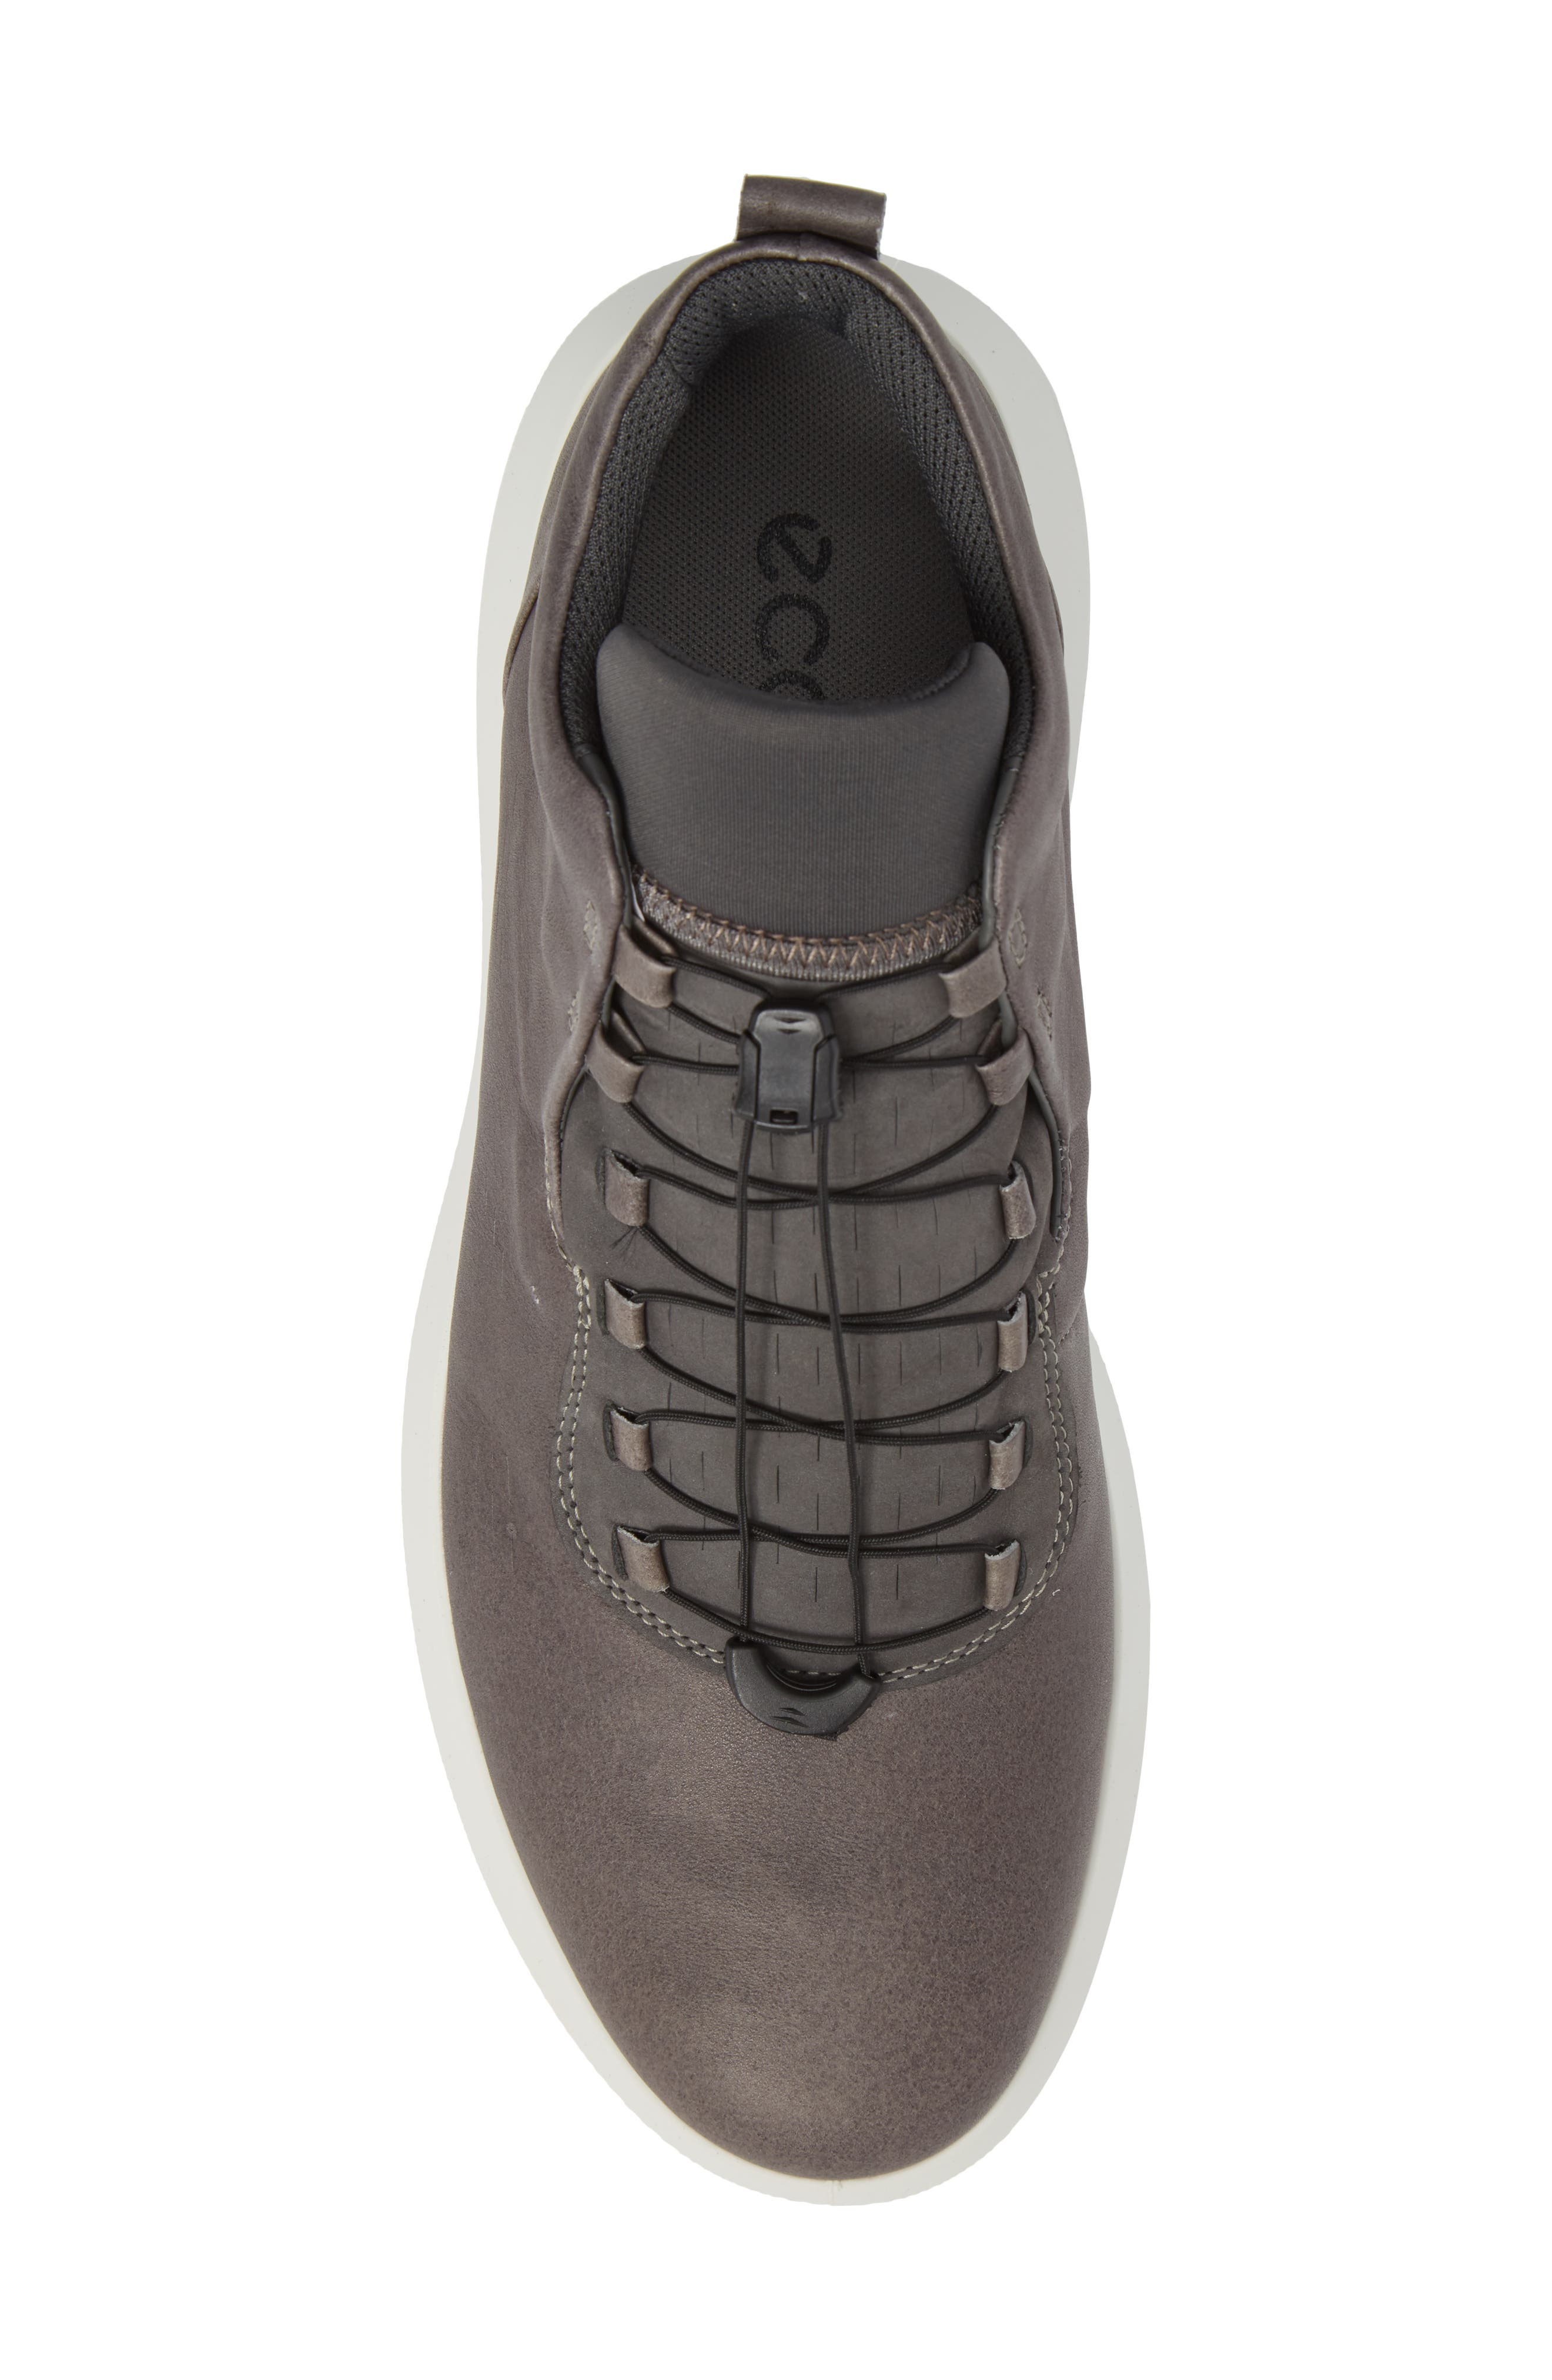 Scinapse High Top Sneaker,                             Alternate thumbnail 5, color,                             WILD DOVE LEATHER